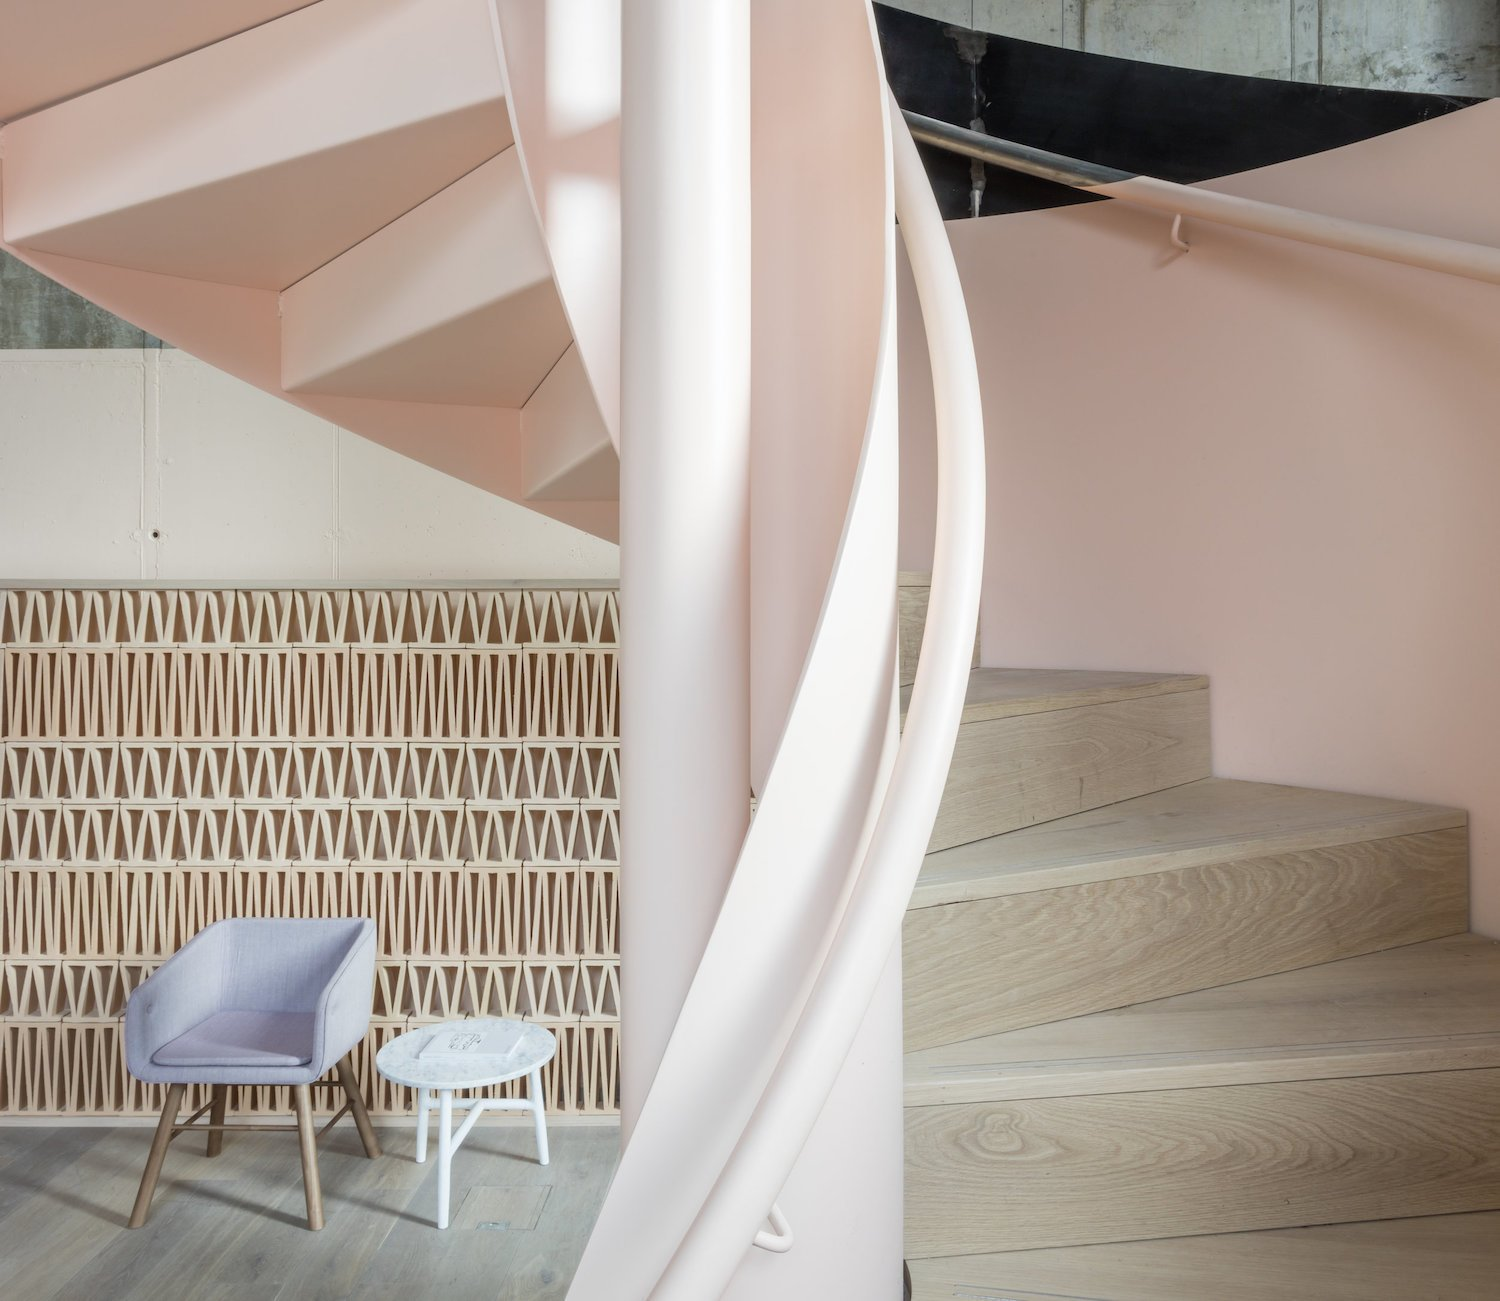 Staircase, Wood Tread, and Metal Railing  Photo 1 of 7 in Leman Locke London by Grzywinski+Pons